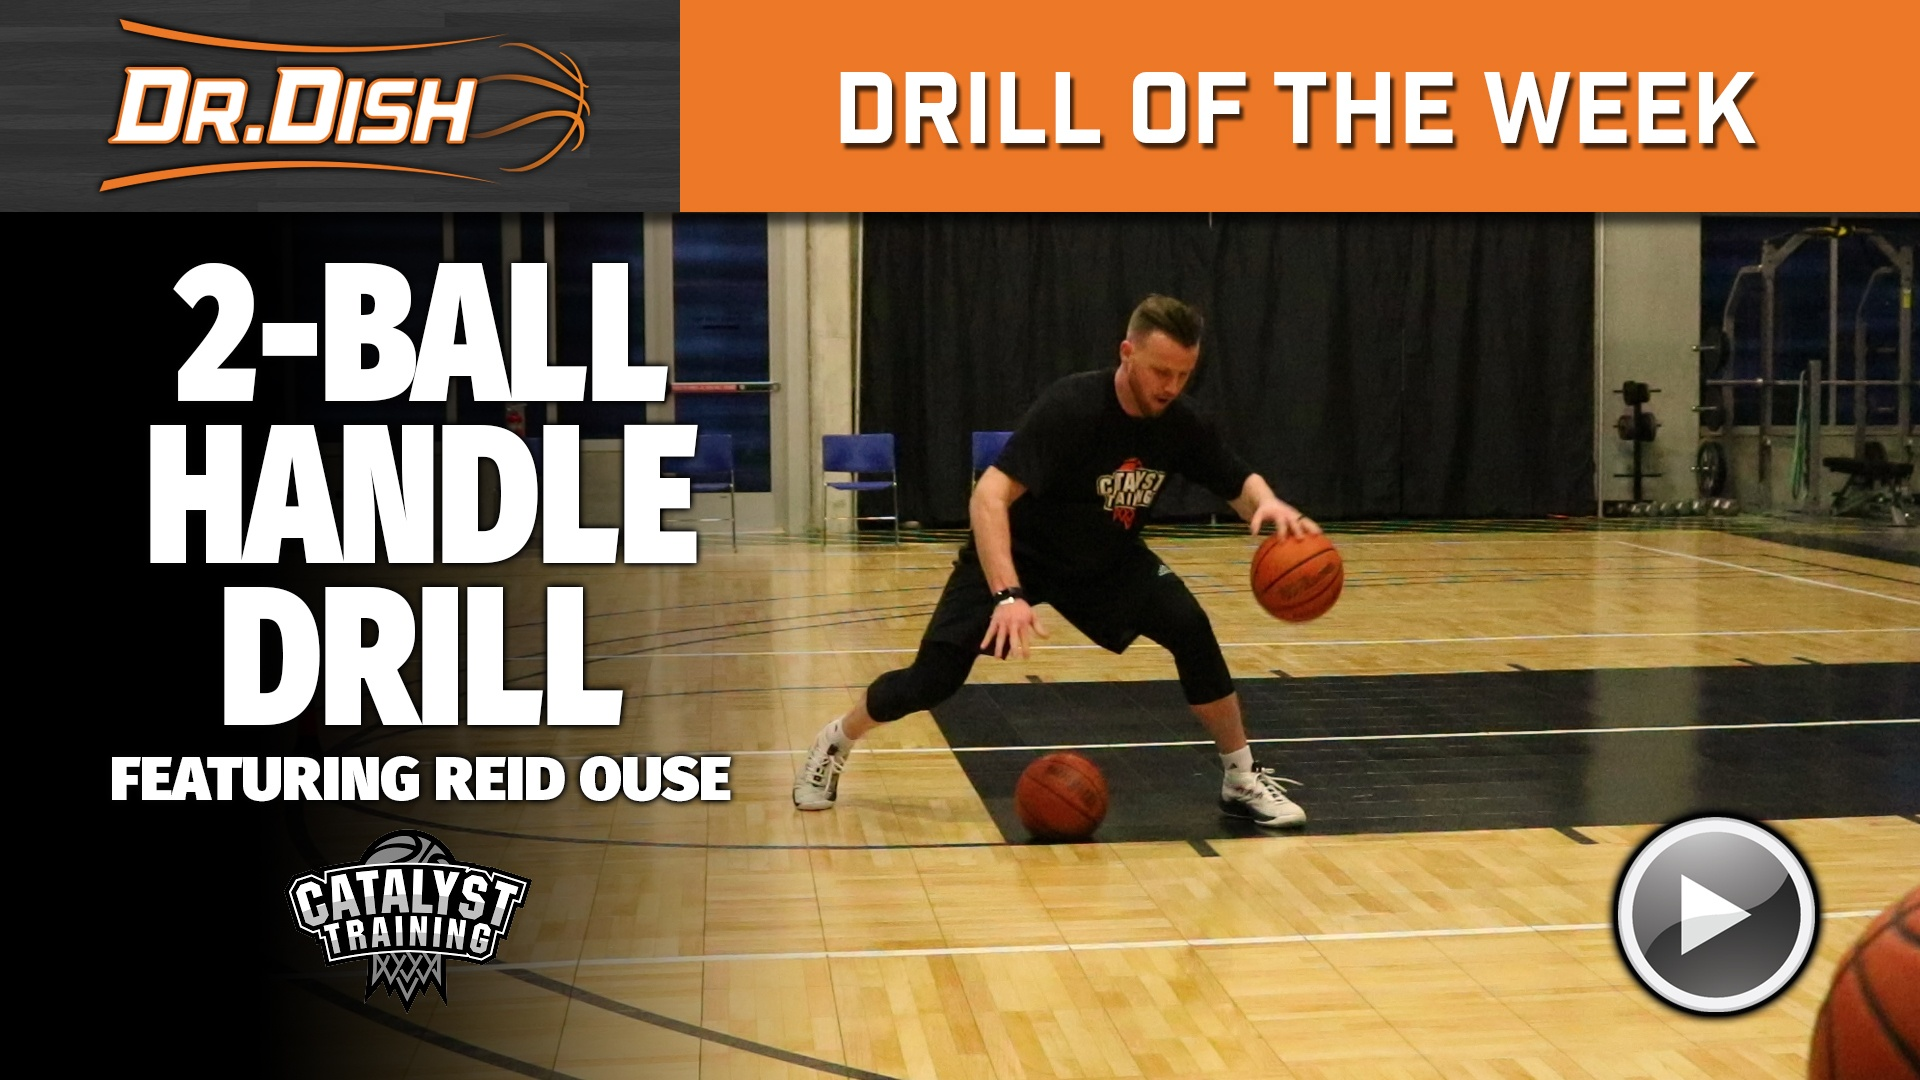 Basketball Drills: Advanced Two Ball Handling Drills with Reid Ouse